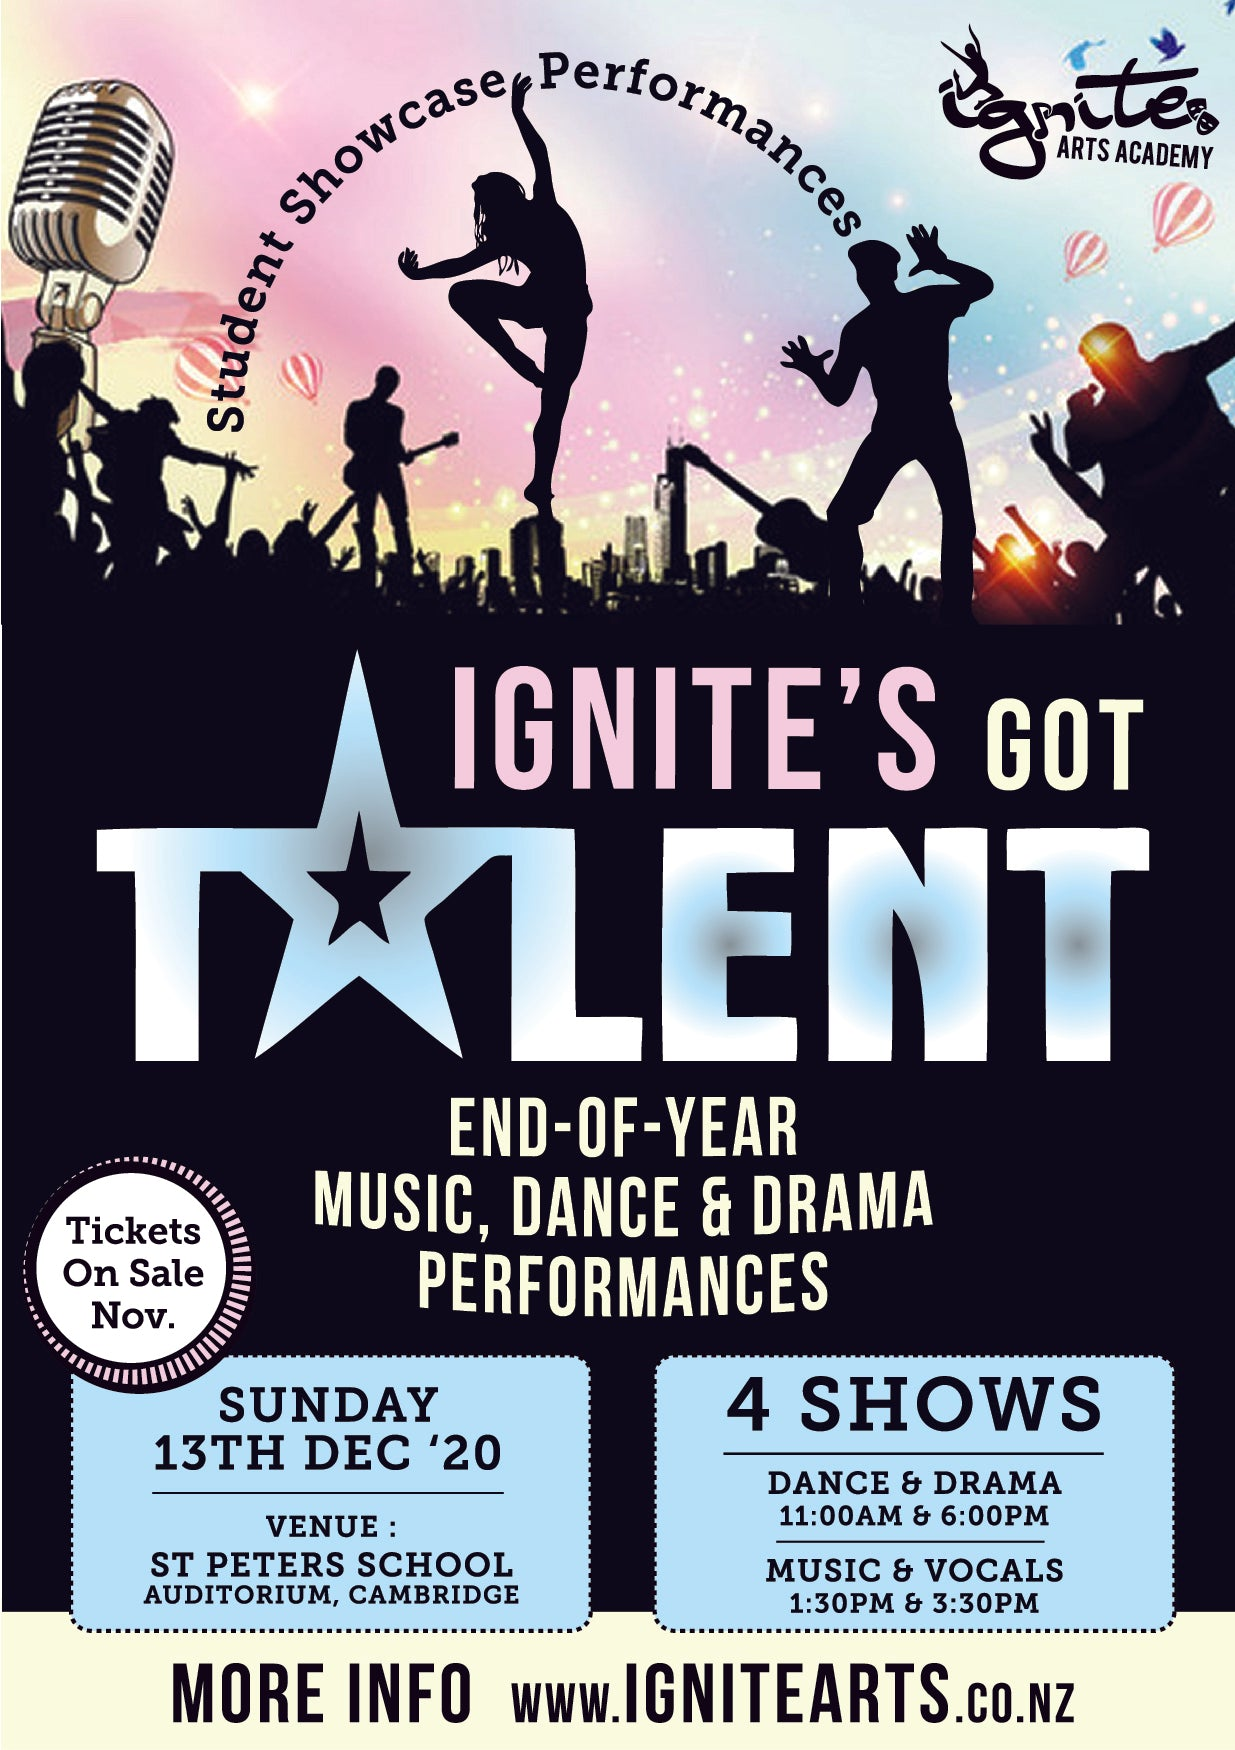 MULTI SHOW TICKETS - 11am Dance and Drama & 1.30pm Music Showcases